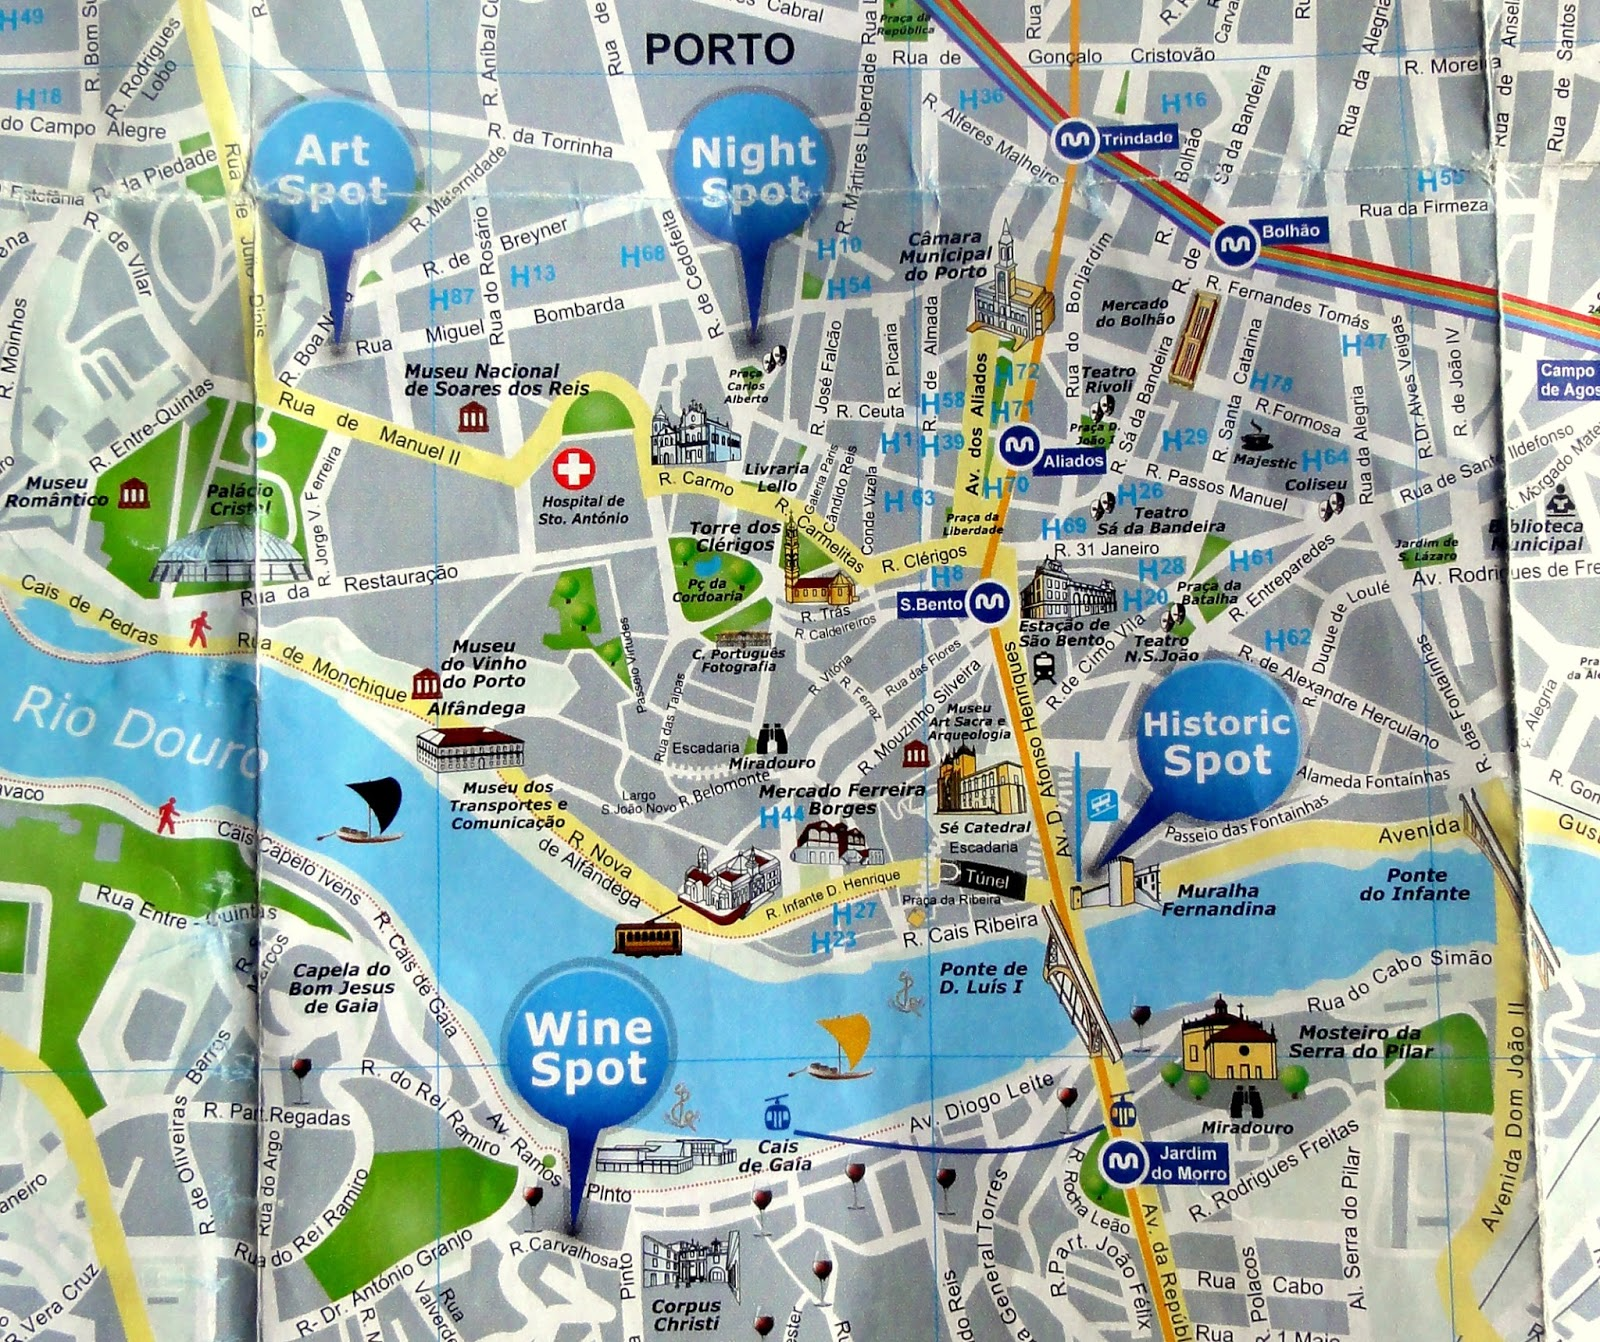 Walking Discoveries and Map of Porto Centre Travel and Lifestyle